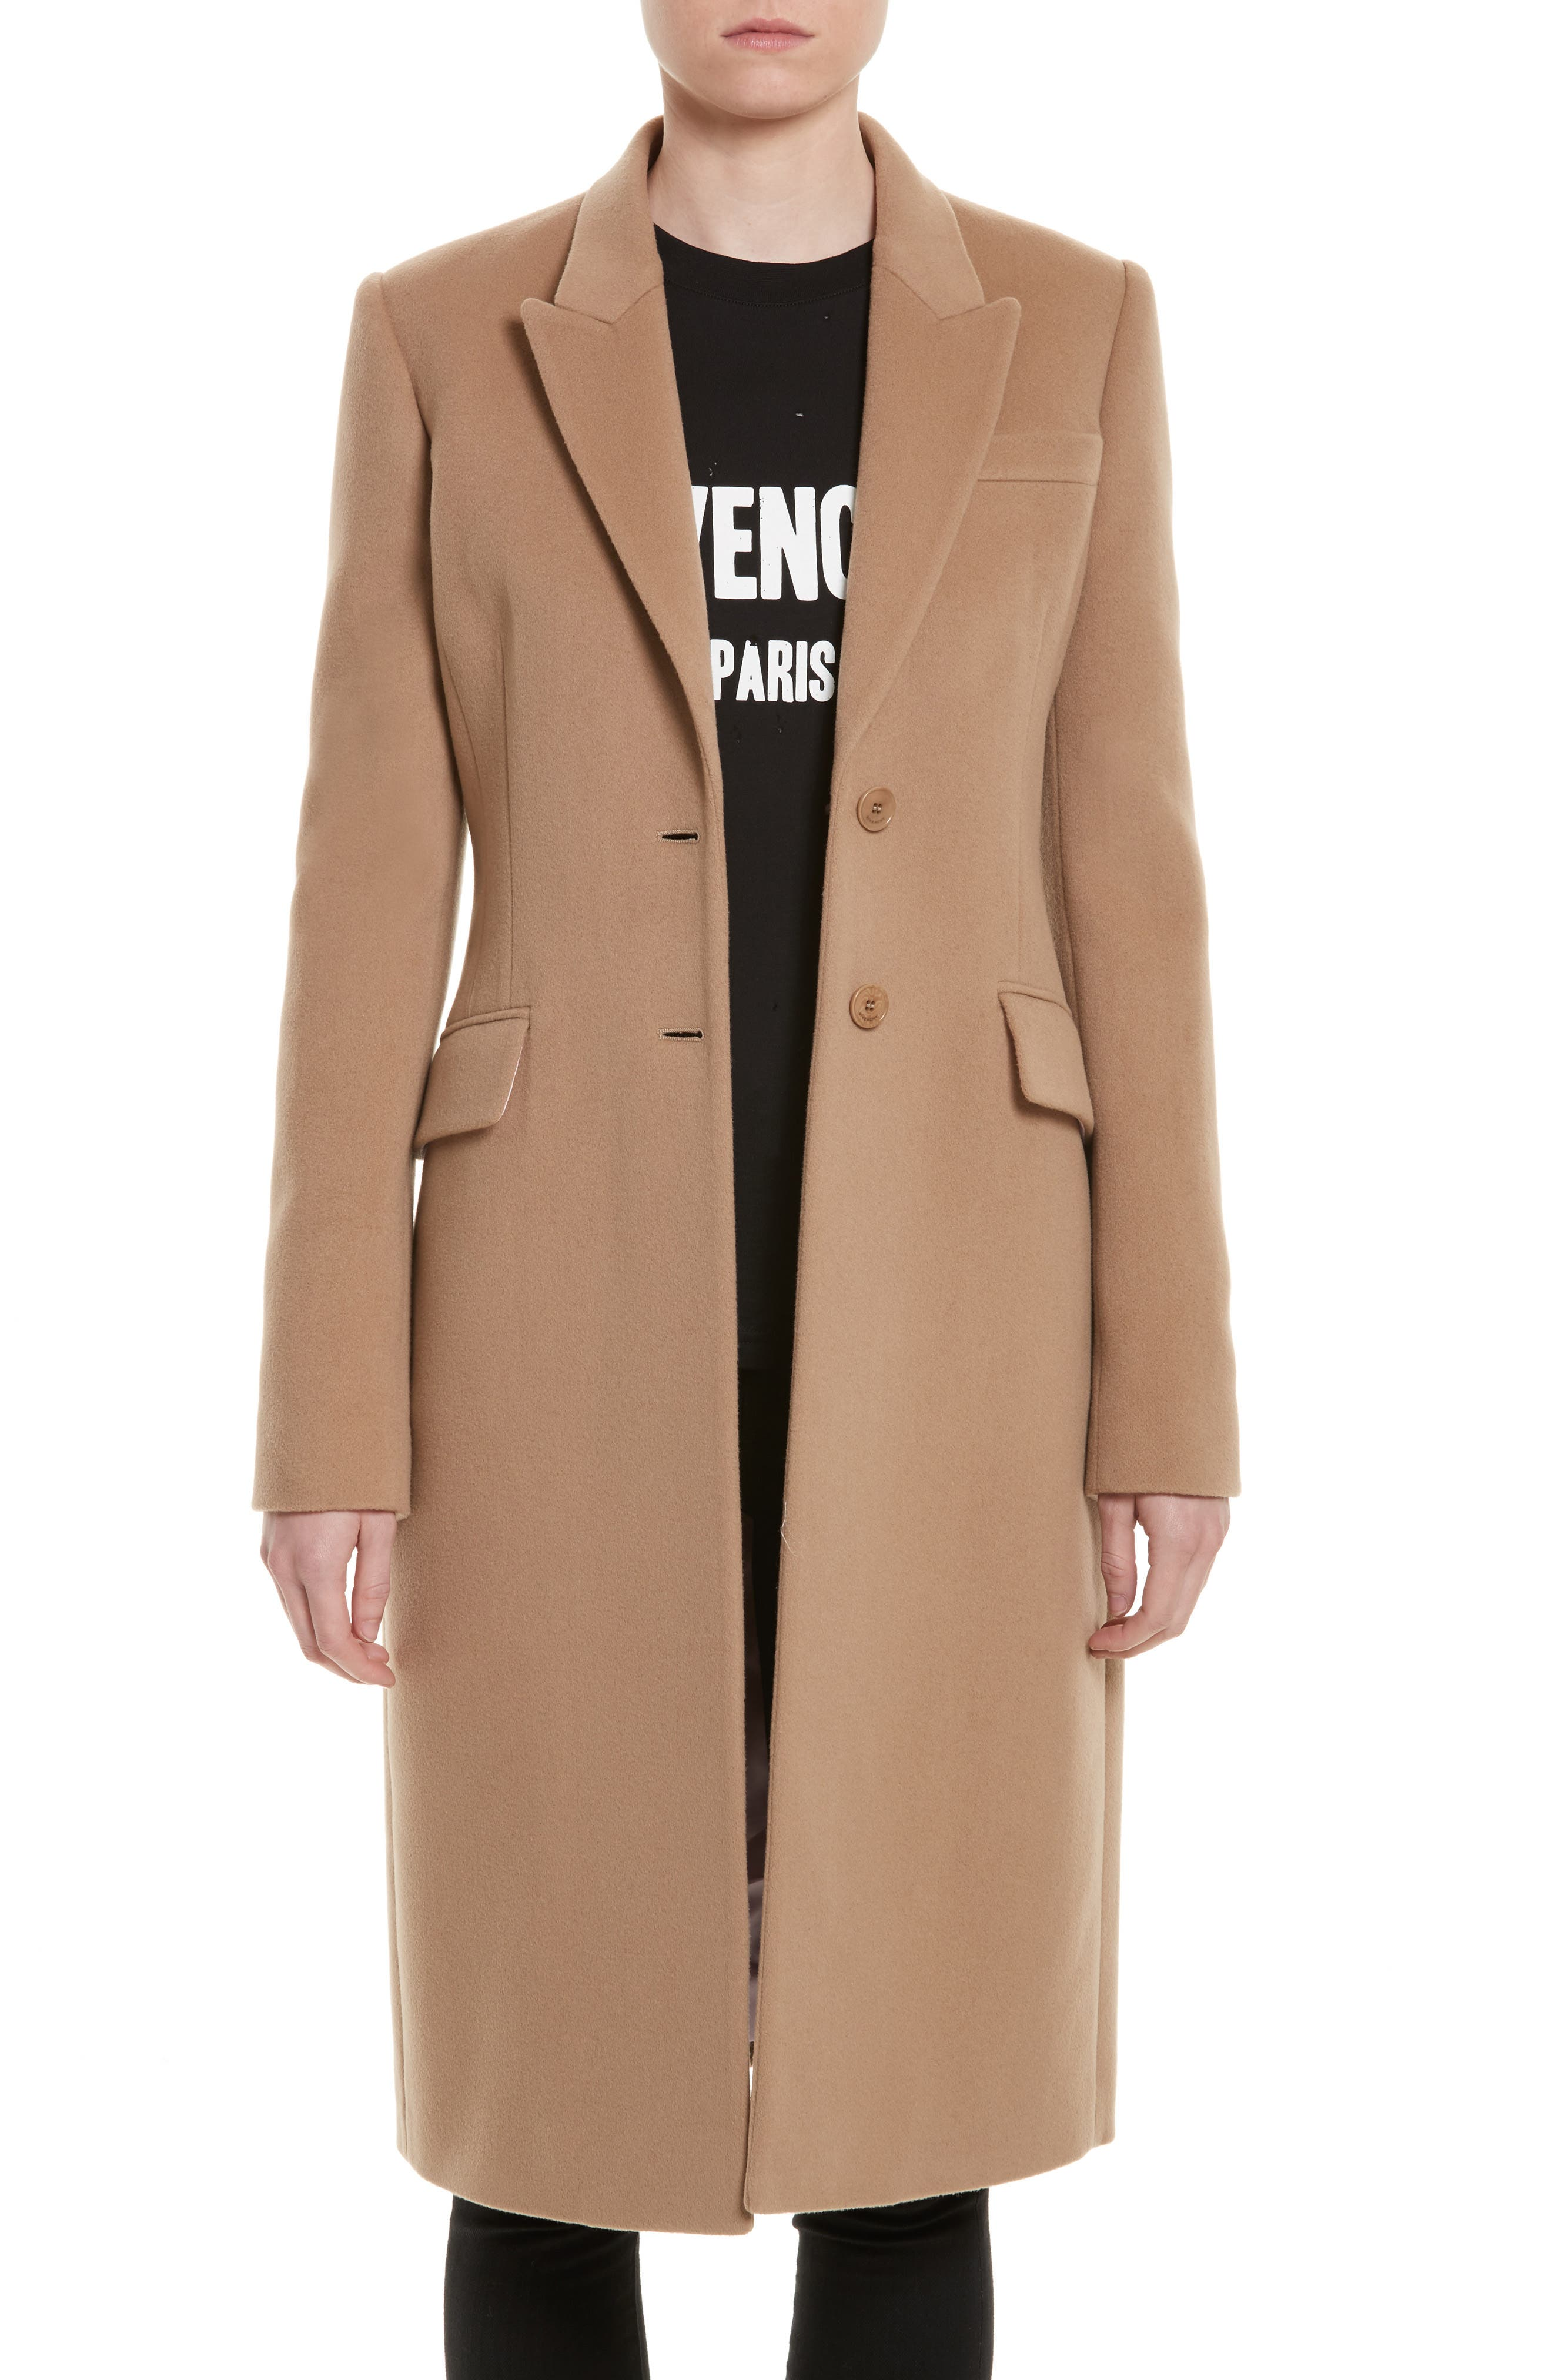 Alternate Image 1 Selected - Givenchy Wool & Cashmere Coat